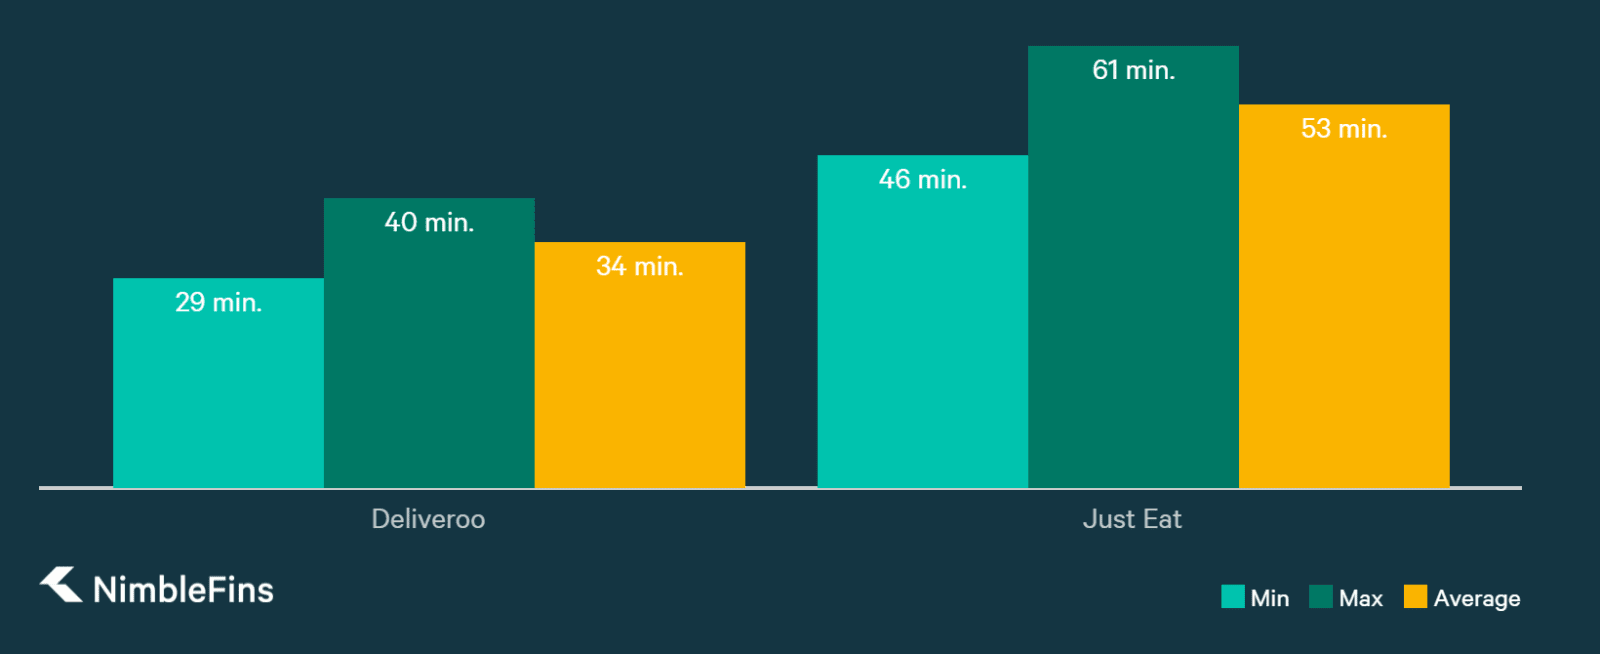 chart comparing Just Right vs. Deliveroo  delivery times